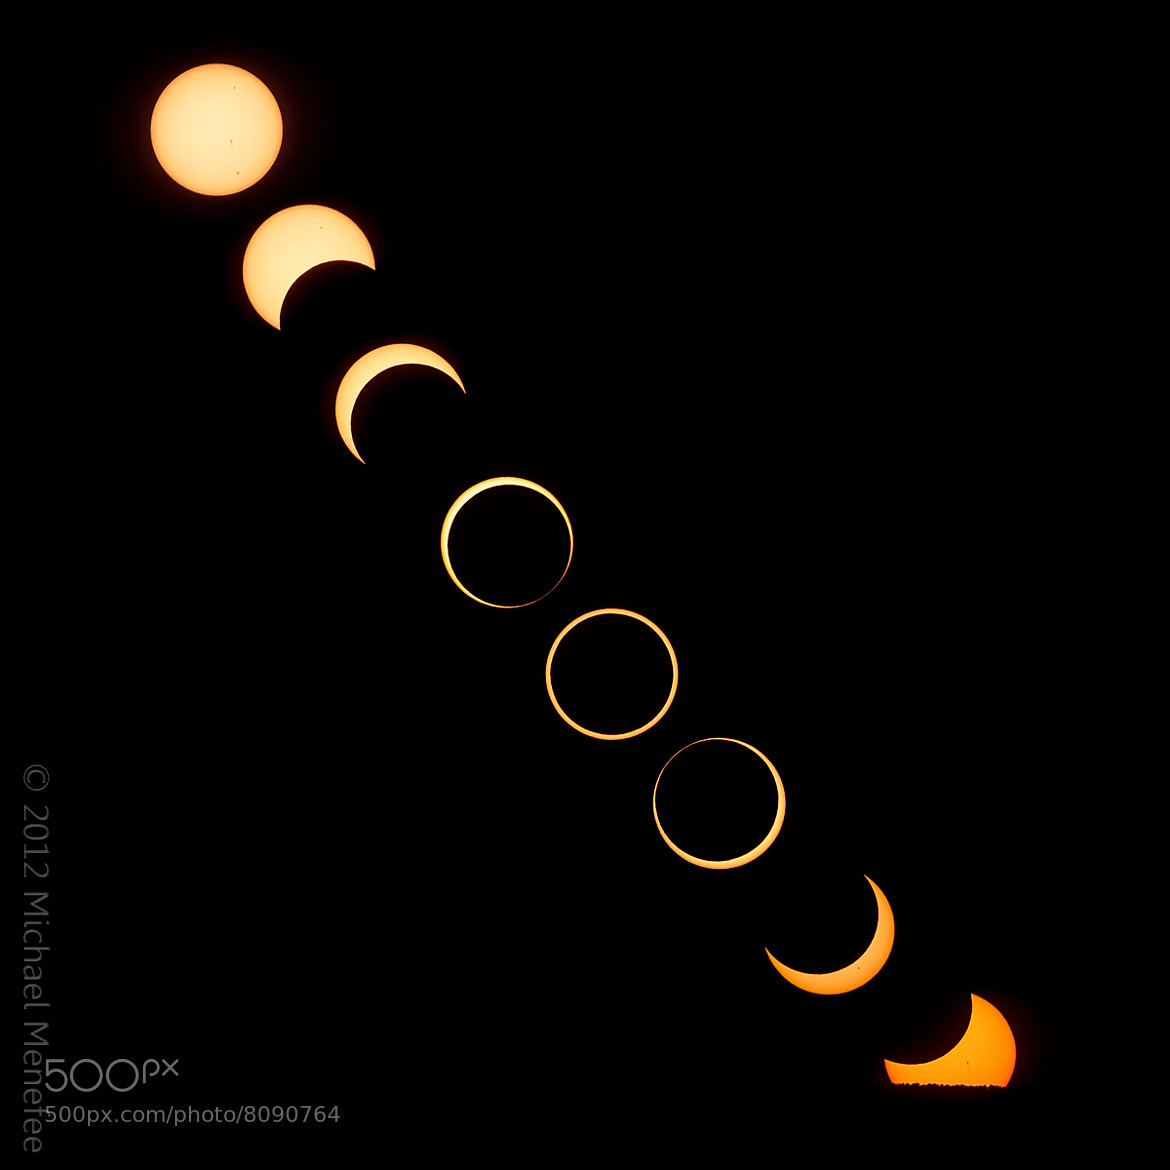 Photograph The Setting of the Annular Solar Eclipse of 2012, May 20 by Michael Menefee on 500px